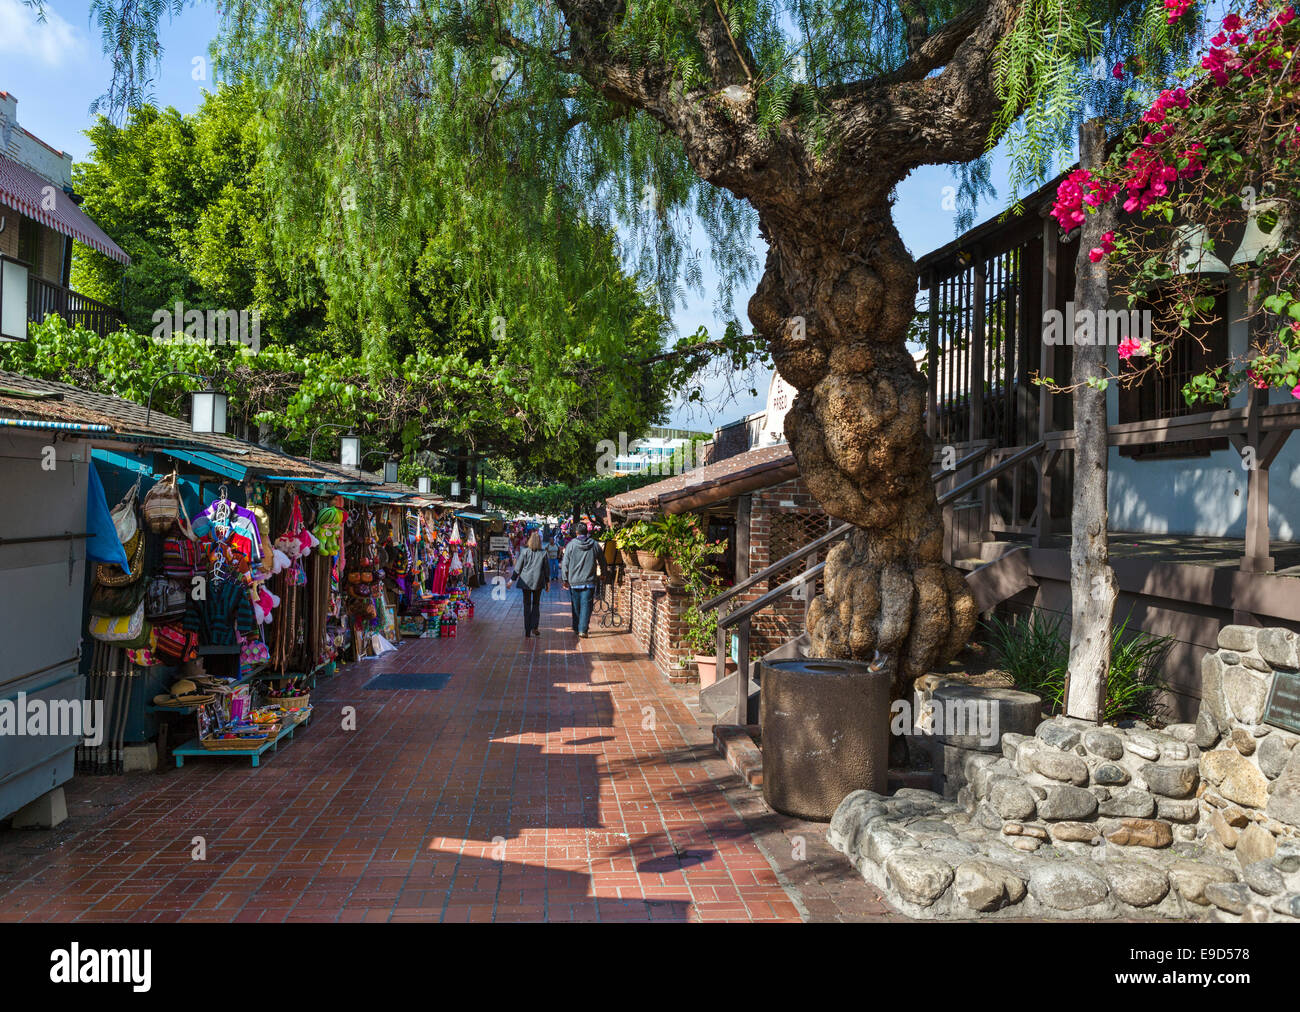 Market booths outside the Avila Adobe on Olvera Street in Los Angeles Plaza Historic District, Los Angeles, California, - Stock Image